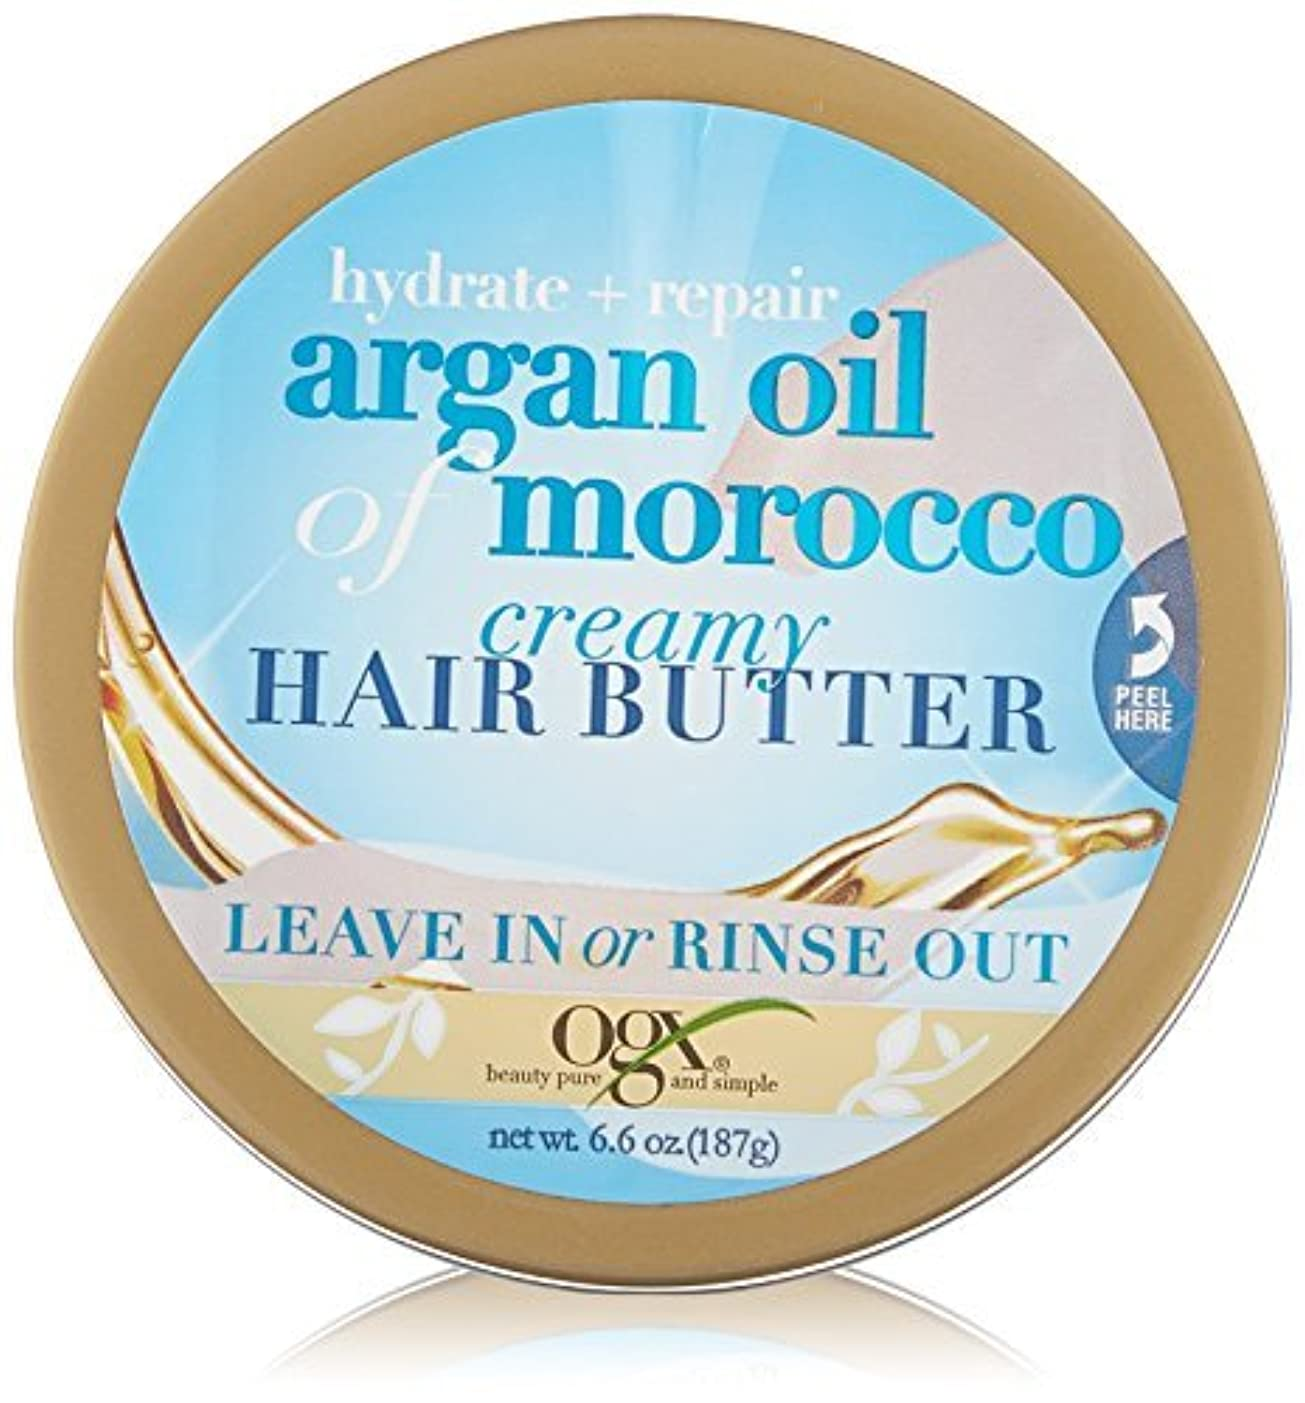 損失トーナメントオアシスOGX Hydrate Plus Repair Argan Oil of Morocco, 6.6 Ounce [並行輸入品]